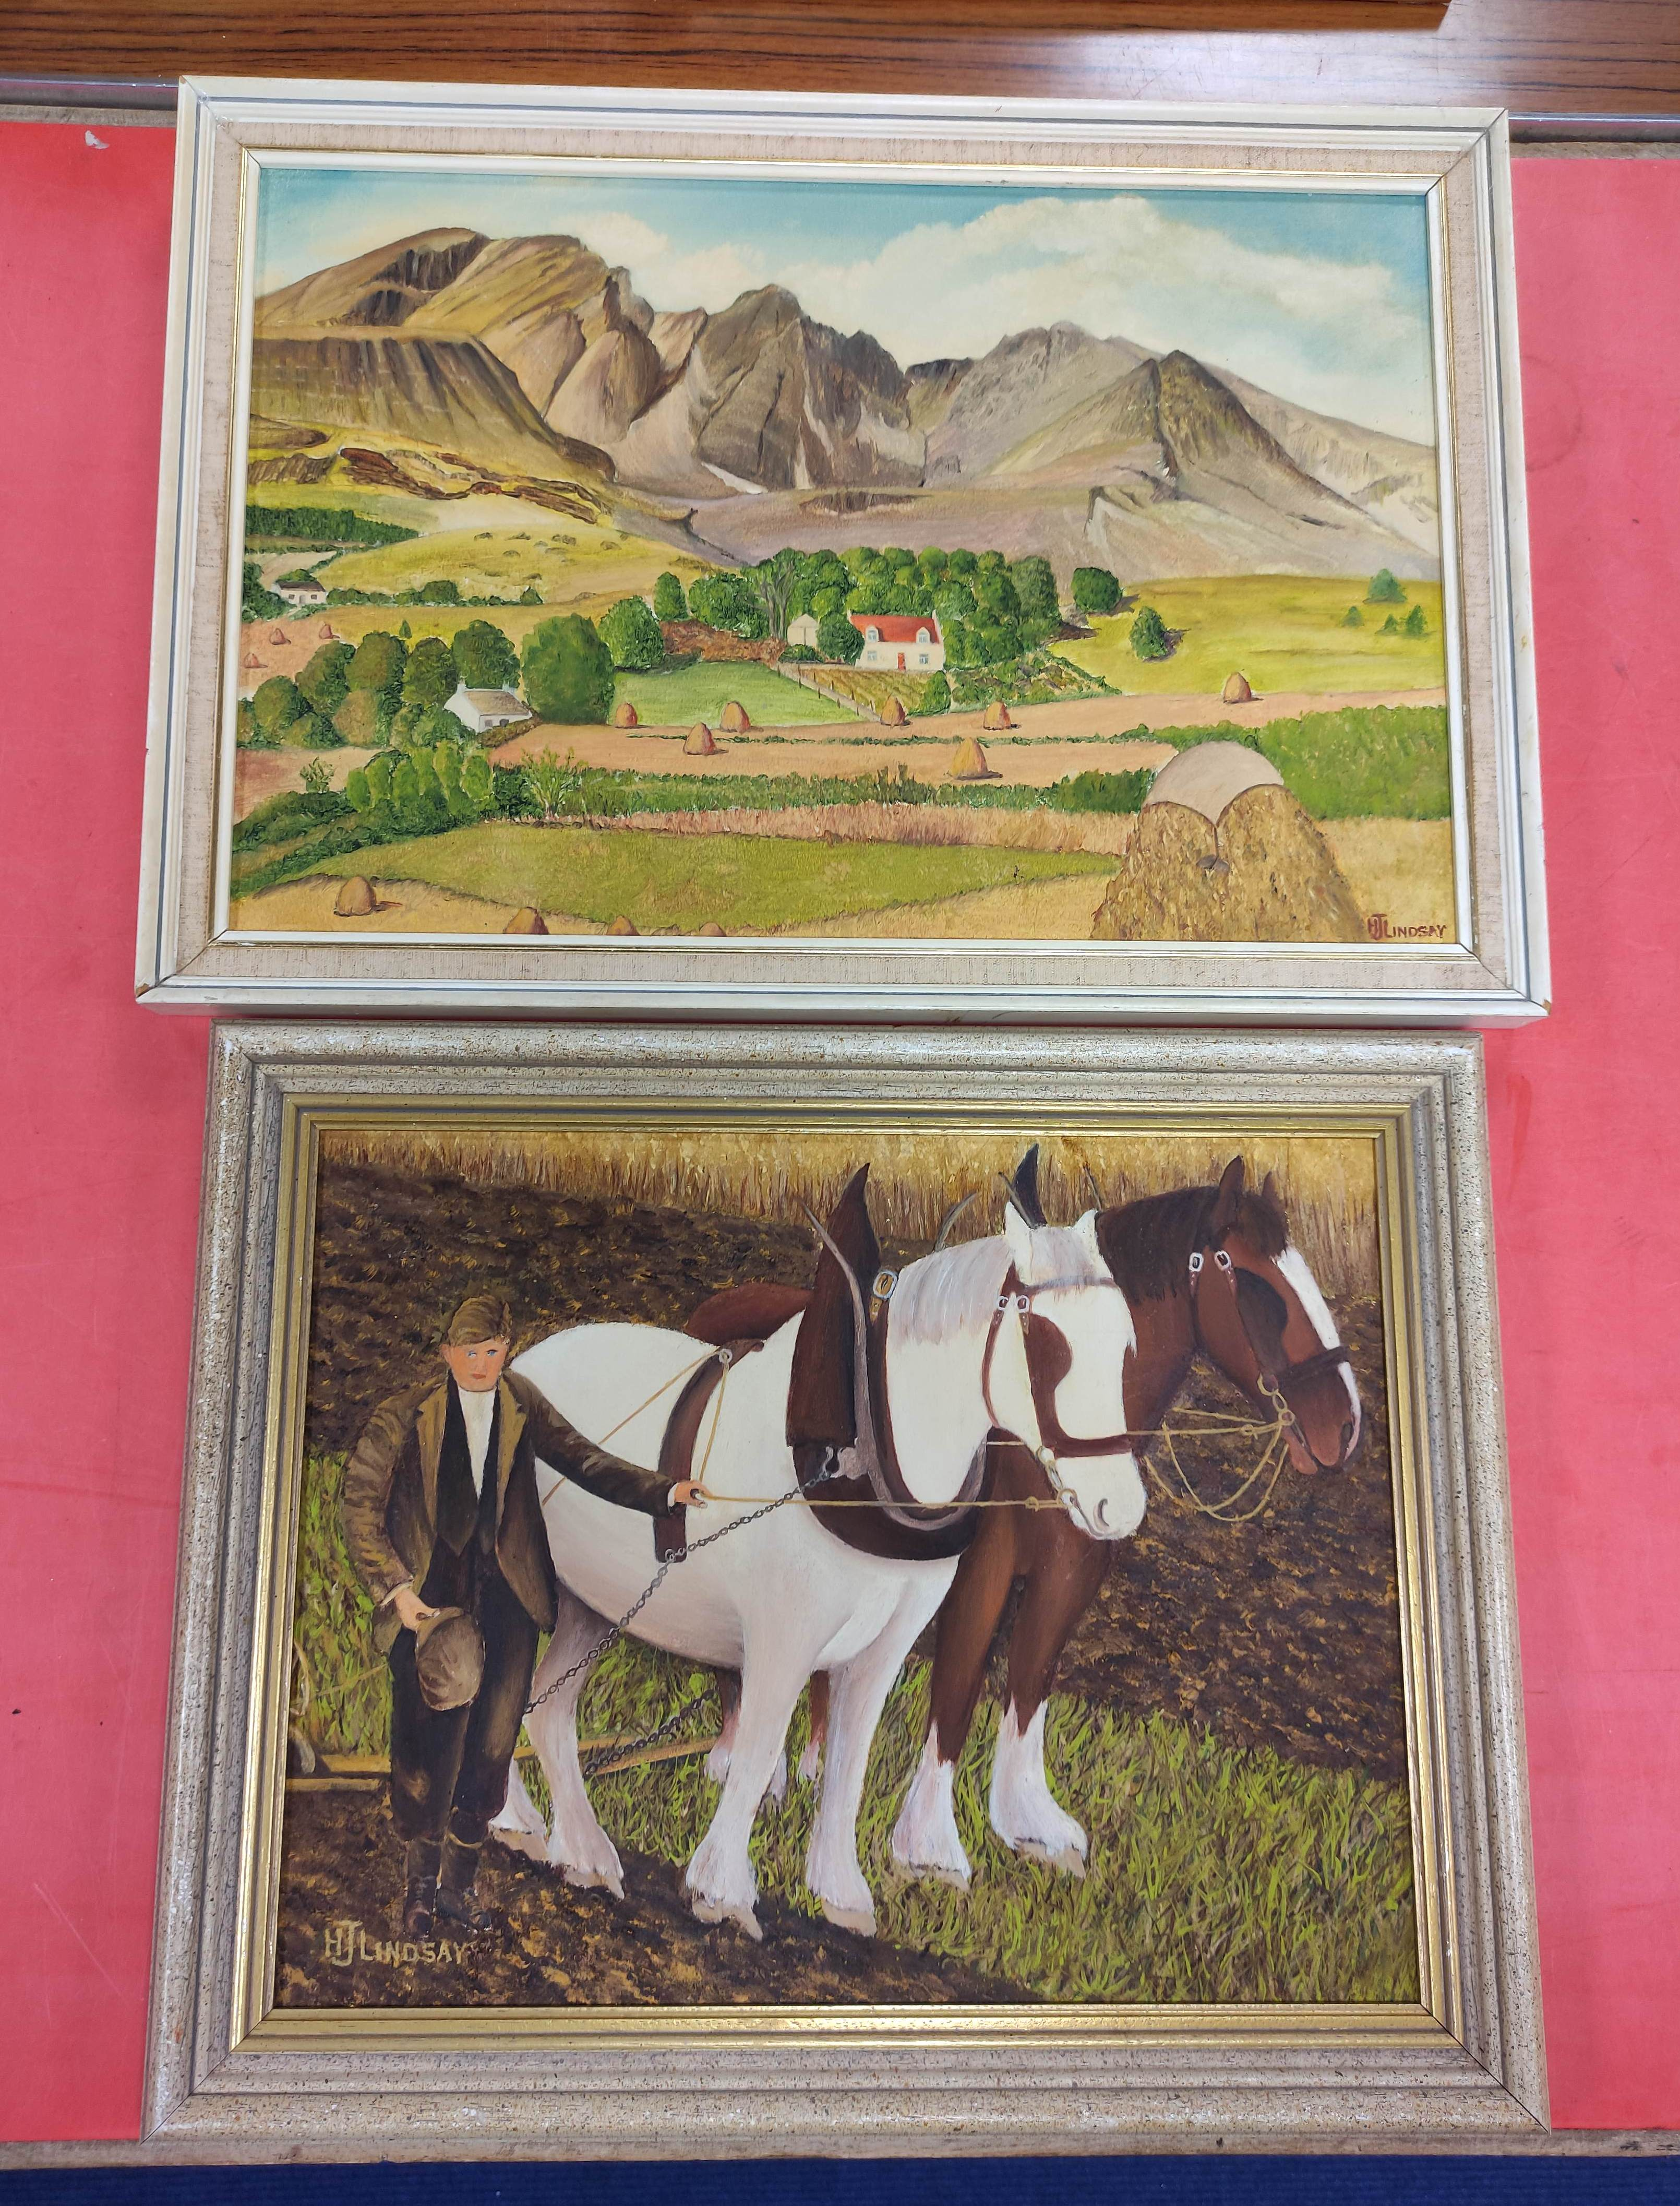 H. J. LINDSAY. 2 naive oils on board of farming life in Skye & various other pictures & prints - Image 2 of 2